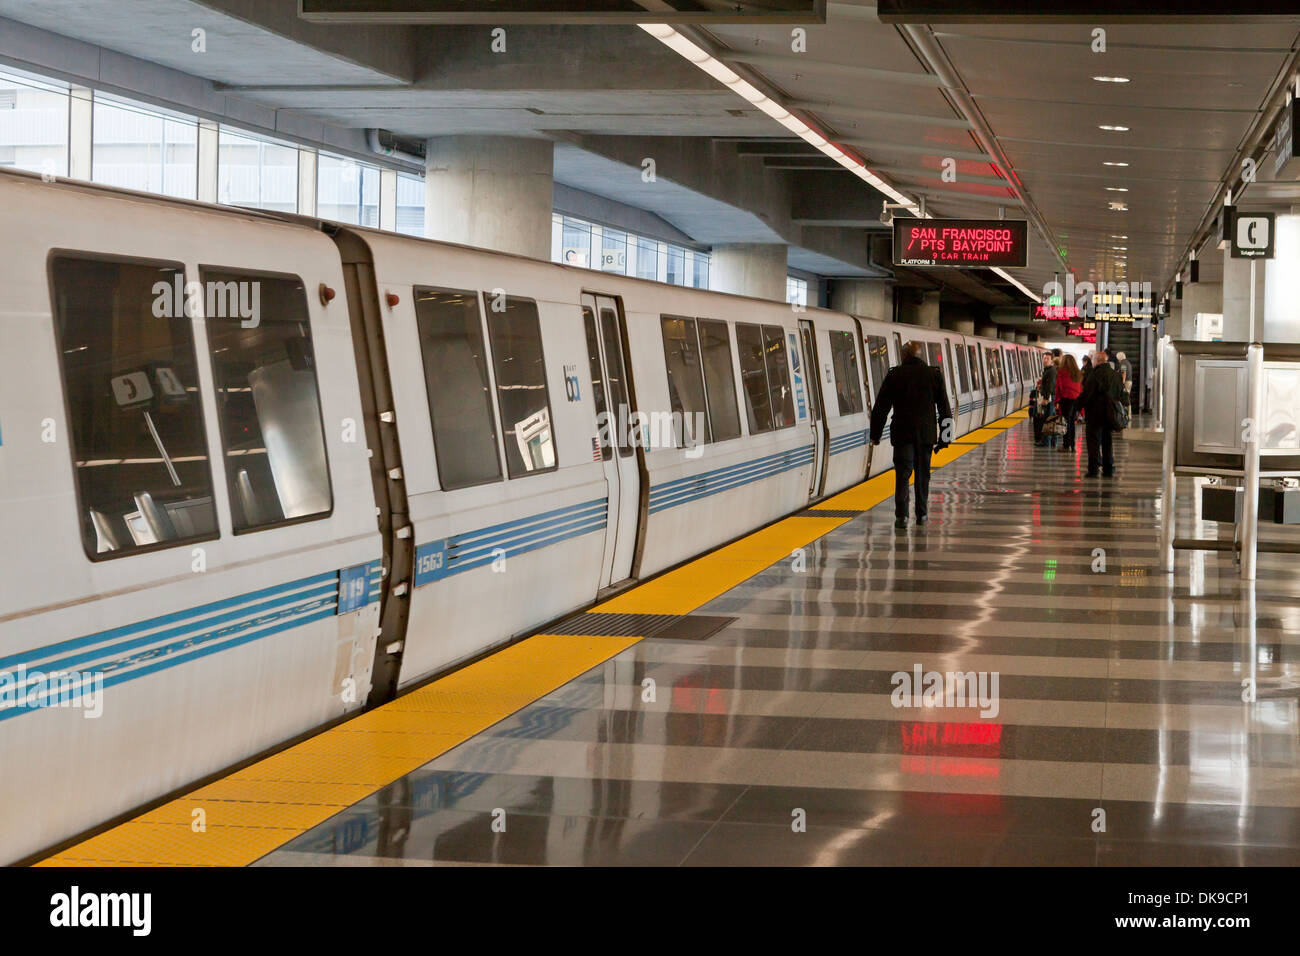 Bart train - San Francisco, California USA - Stock Image